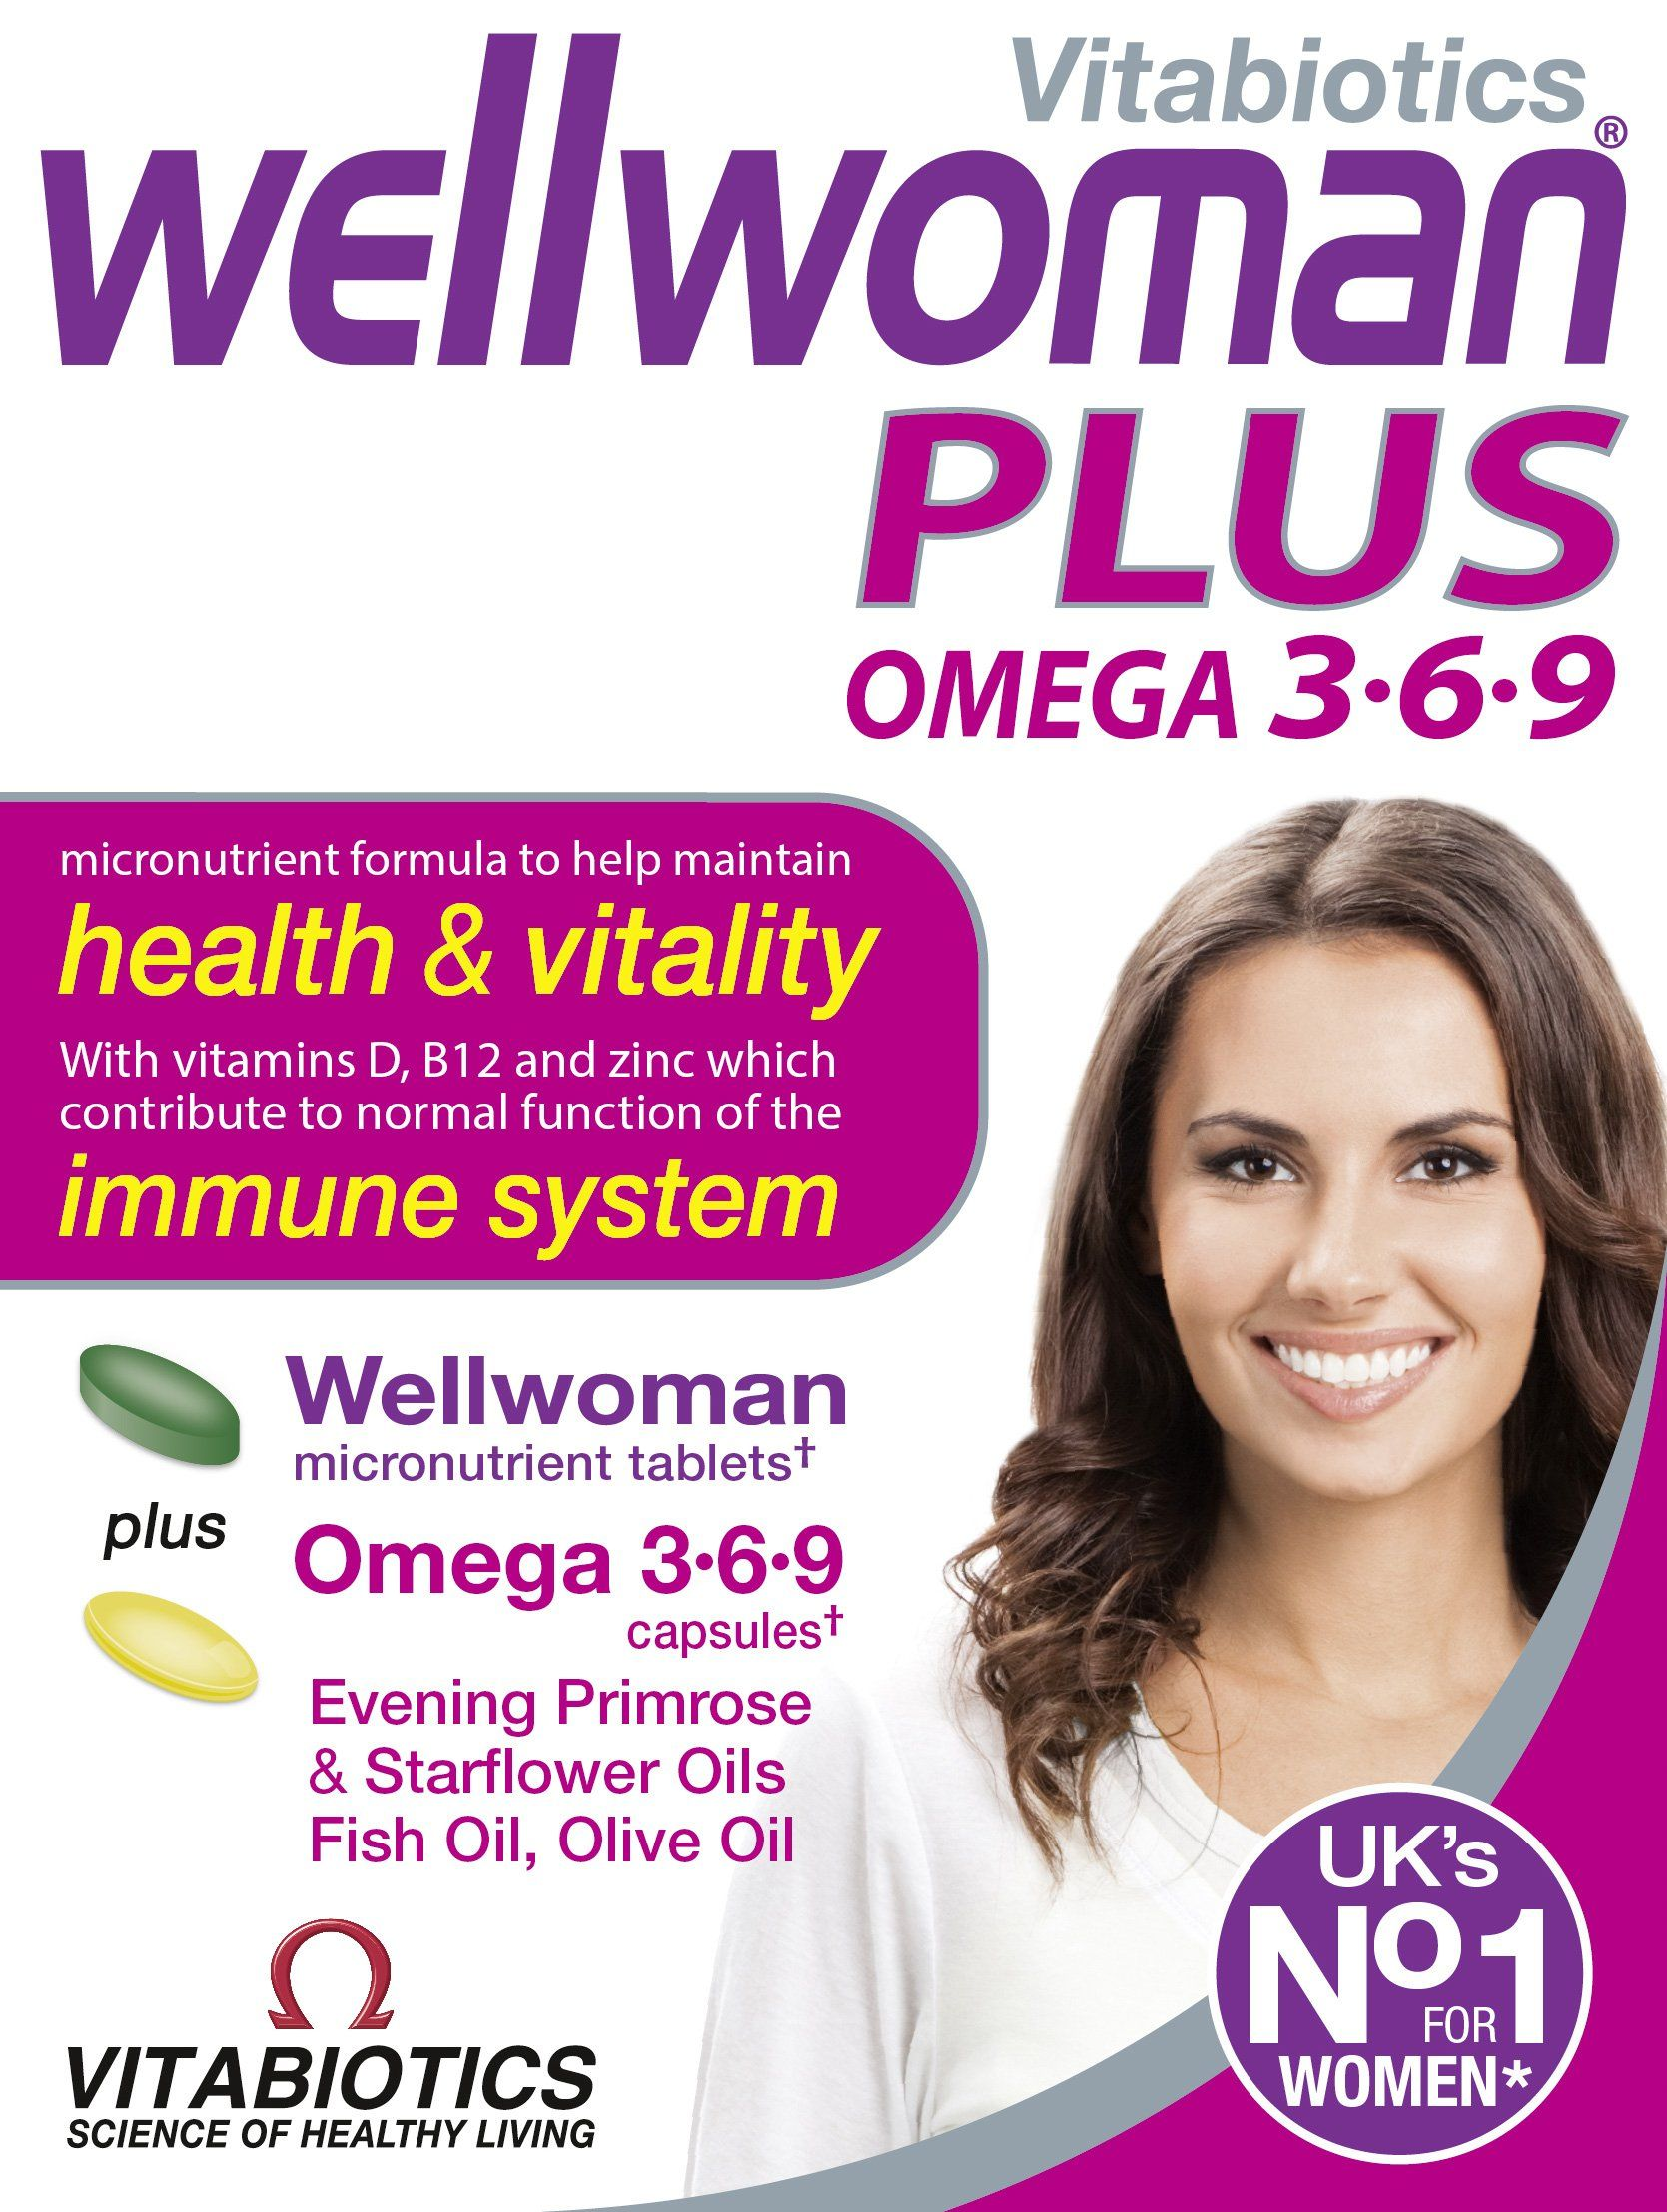 """Vitabiotics Wellwoman Plus Tablets 56 Capsules. RRP: £14.25 PRICE: £9.95 (FREE Delivery); you SAVE £4.30 (30%); OMEGA 3 6 9 ALSO contains all the benefits of the Original nutritional supplements; KEEP UP with your DAILY LIFE.. """"GREAT all round vitamin and good VALUE for MONEY. Would RECOMMEND"""" – By Izzywizzy via: http://www.sd4shila.net/uk-visitors OR http://sd4shila.creativesolutionstore.com/inter-links.html  OR http://sd4shila.creativesolutionstore.com OR http://www.sd4shila.net"""